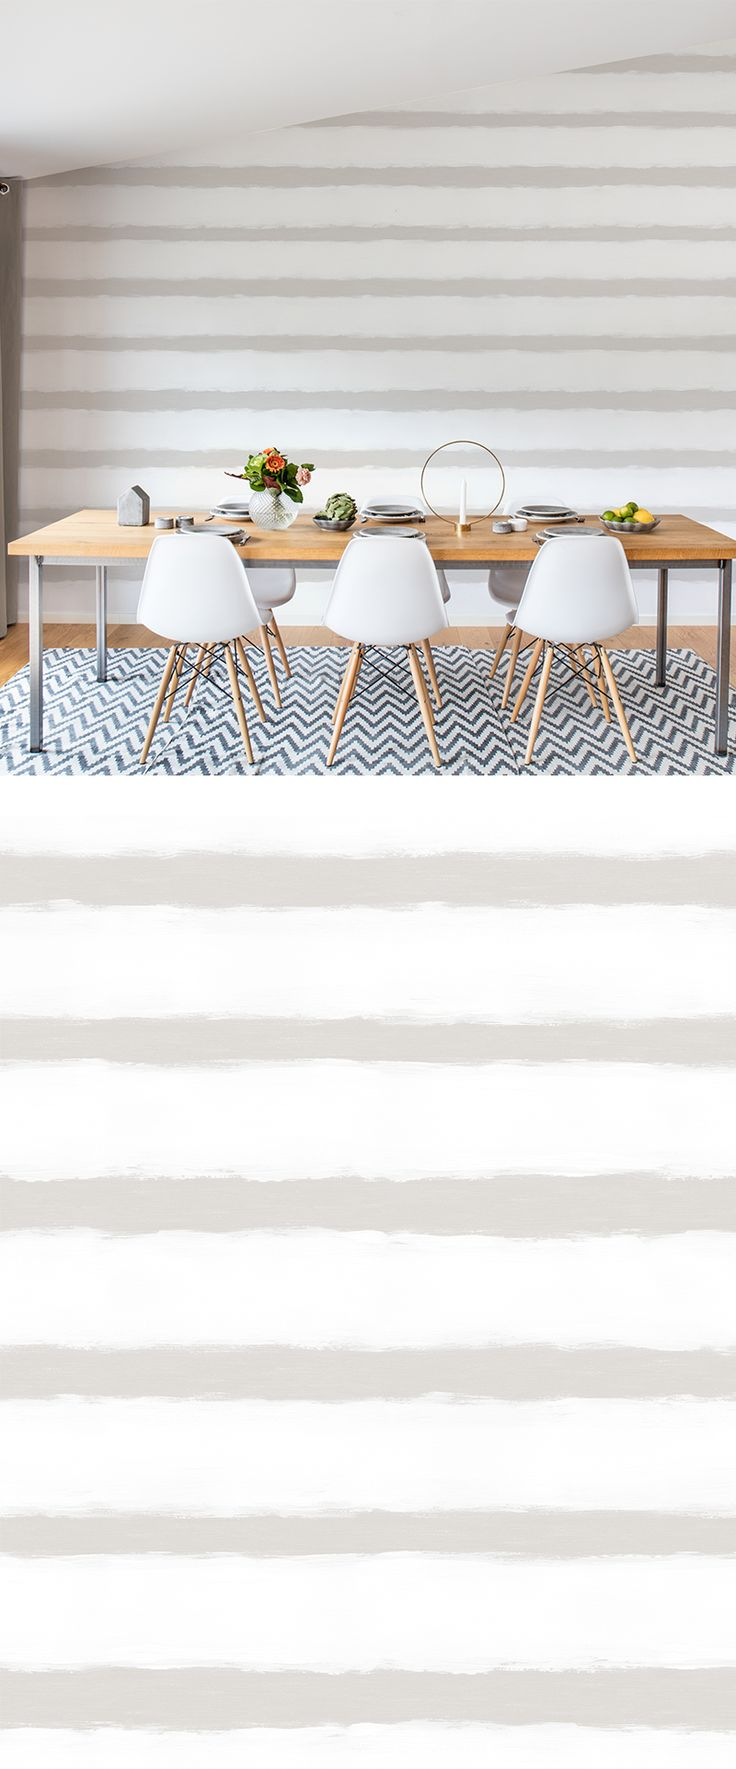 A light beige and white mural wallpaper with hand-painted stripes which reflects the seaside way of living.